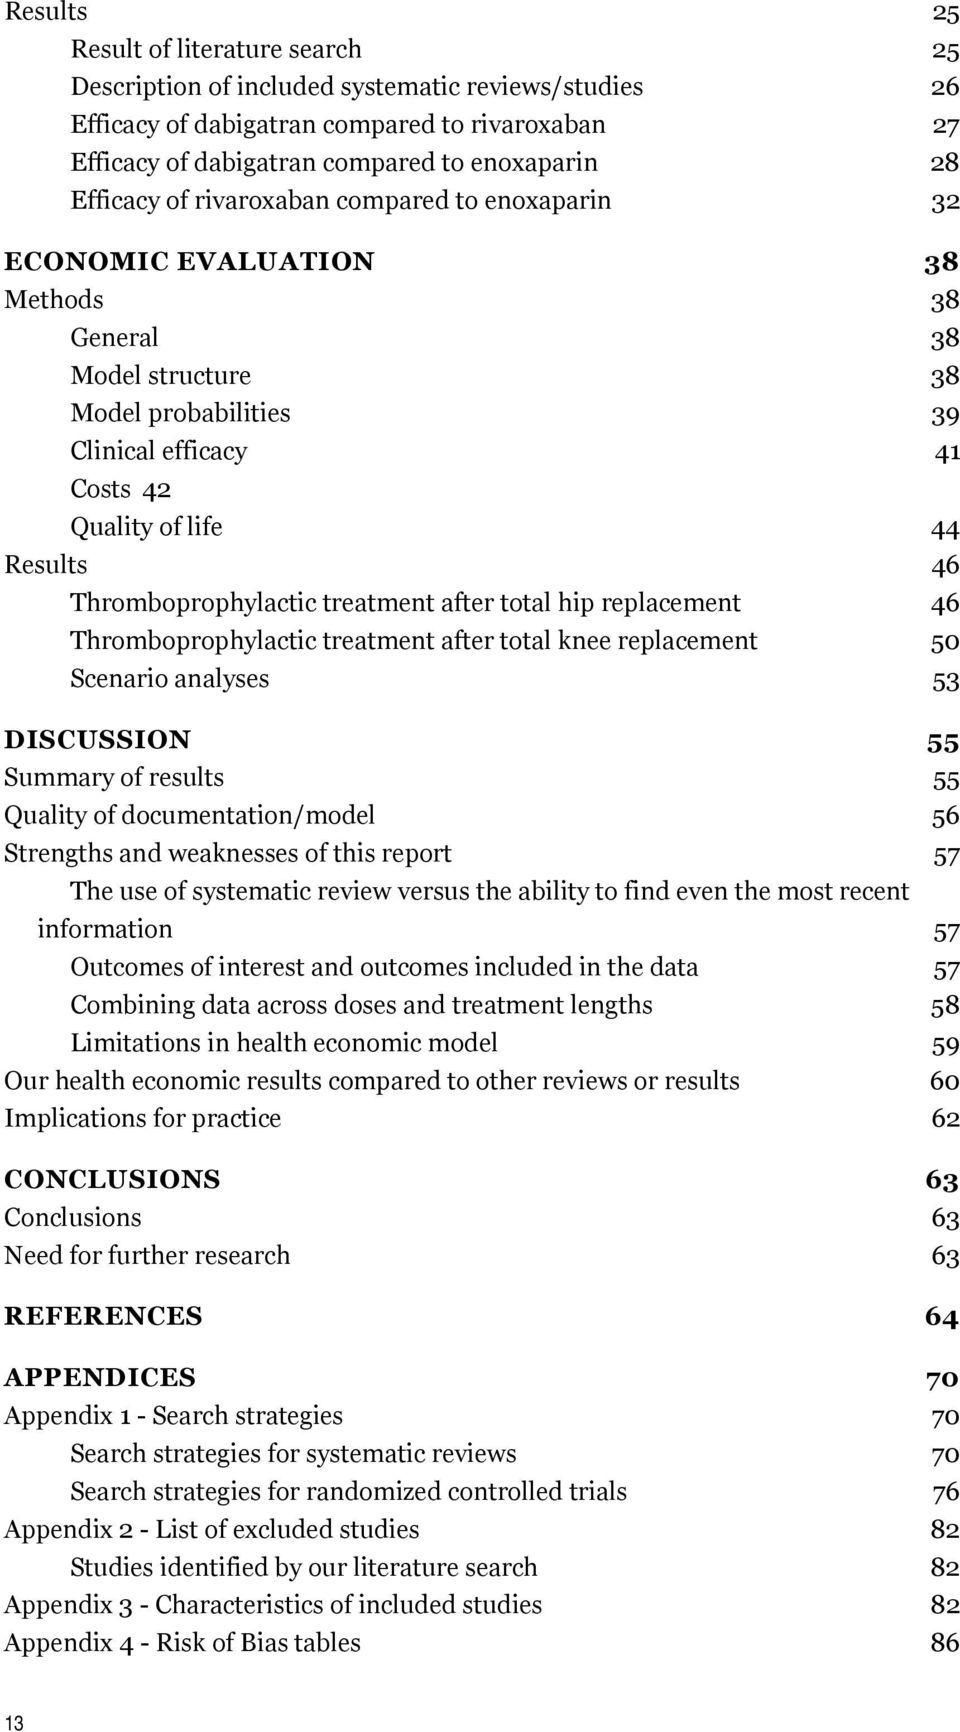 Thromboprophylactic treatment after total hip replacement 46 Thromboprophylactic treatment after total knee replacement 50 Scenario analyses 53 DISCUSSION 55 Summary of results 55 Quality of